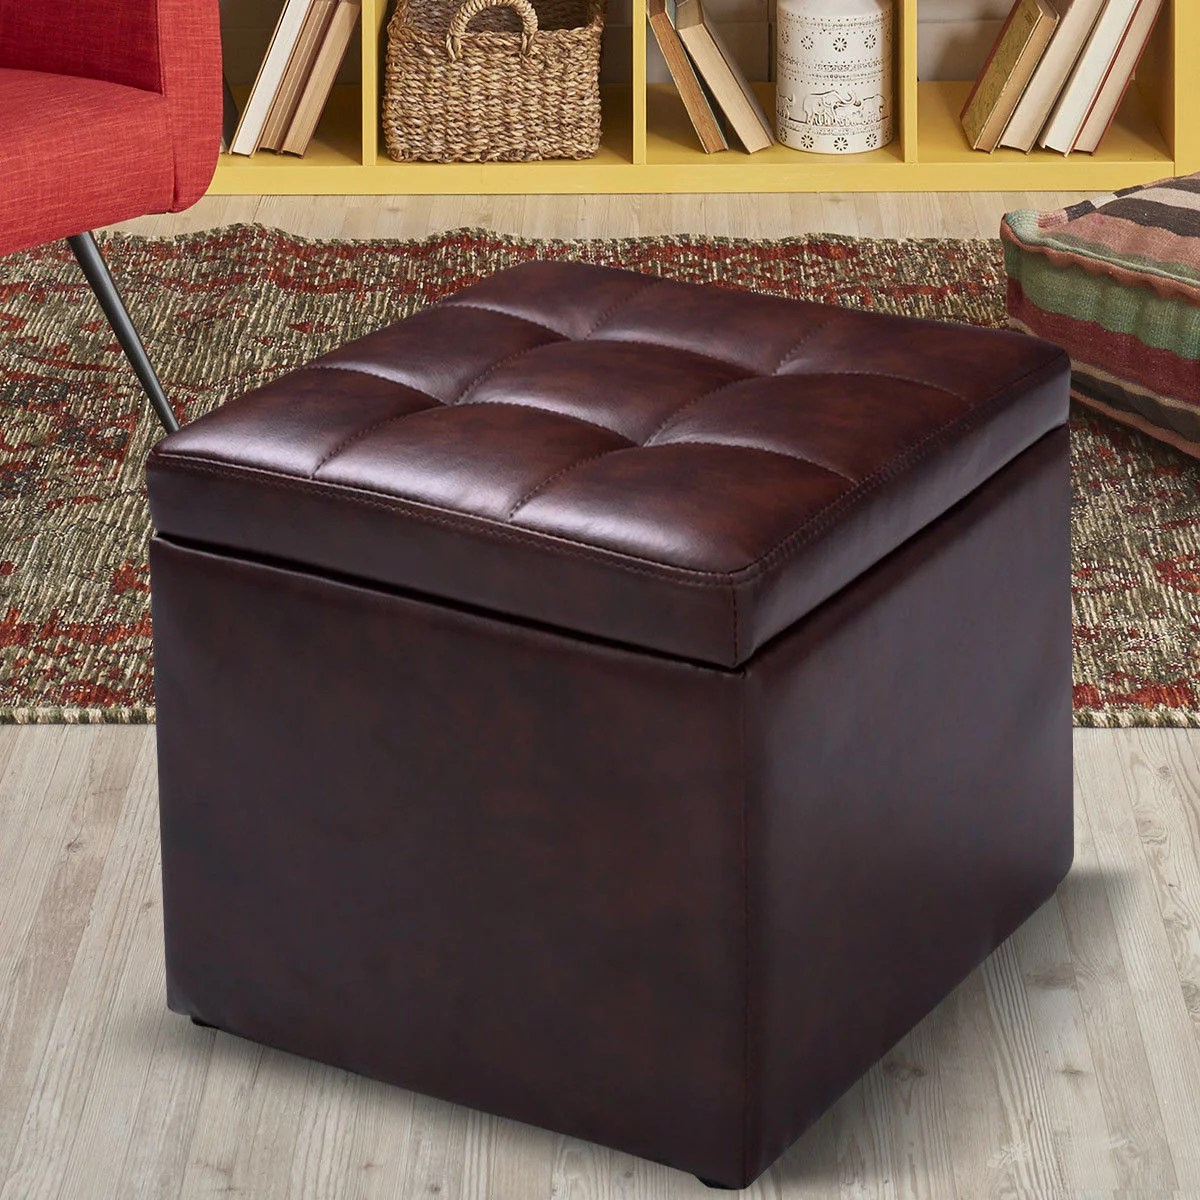 costway 16 cube ottoman pouffe storage box lounge seat footstools with hinge top red brown